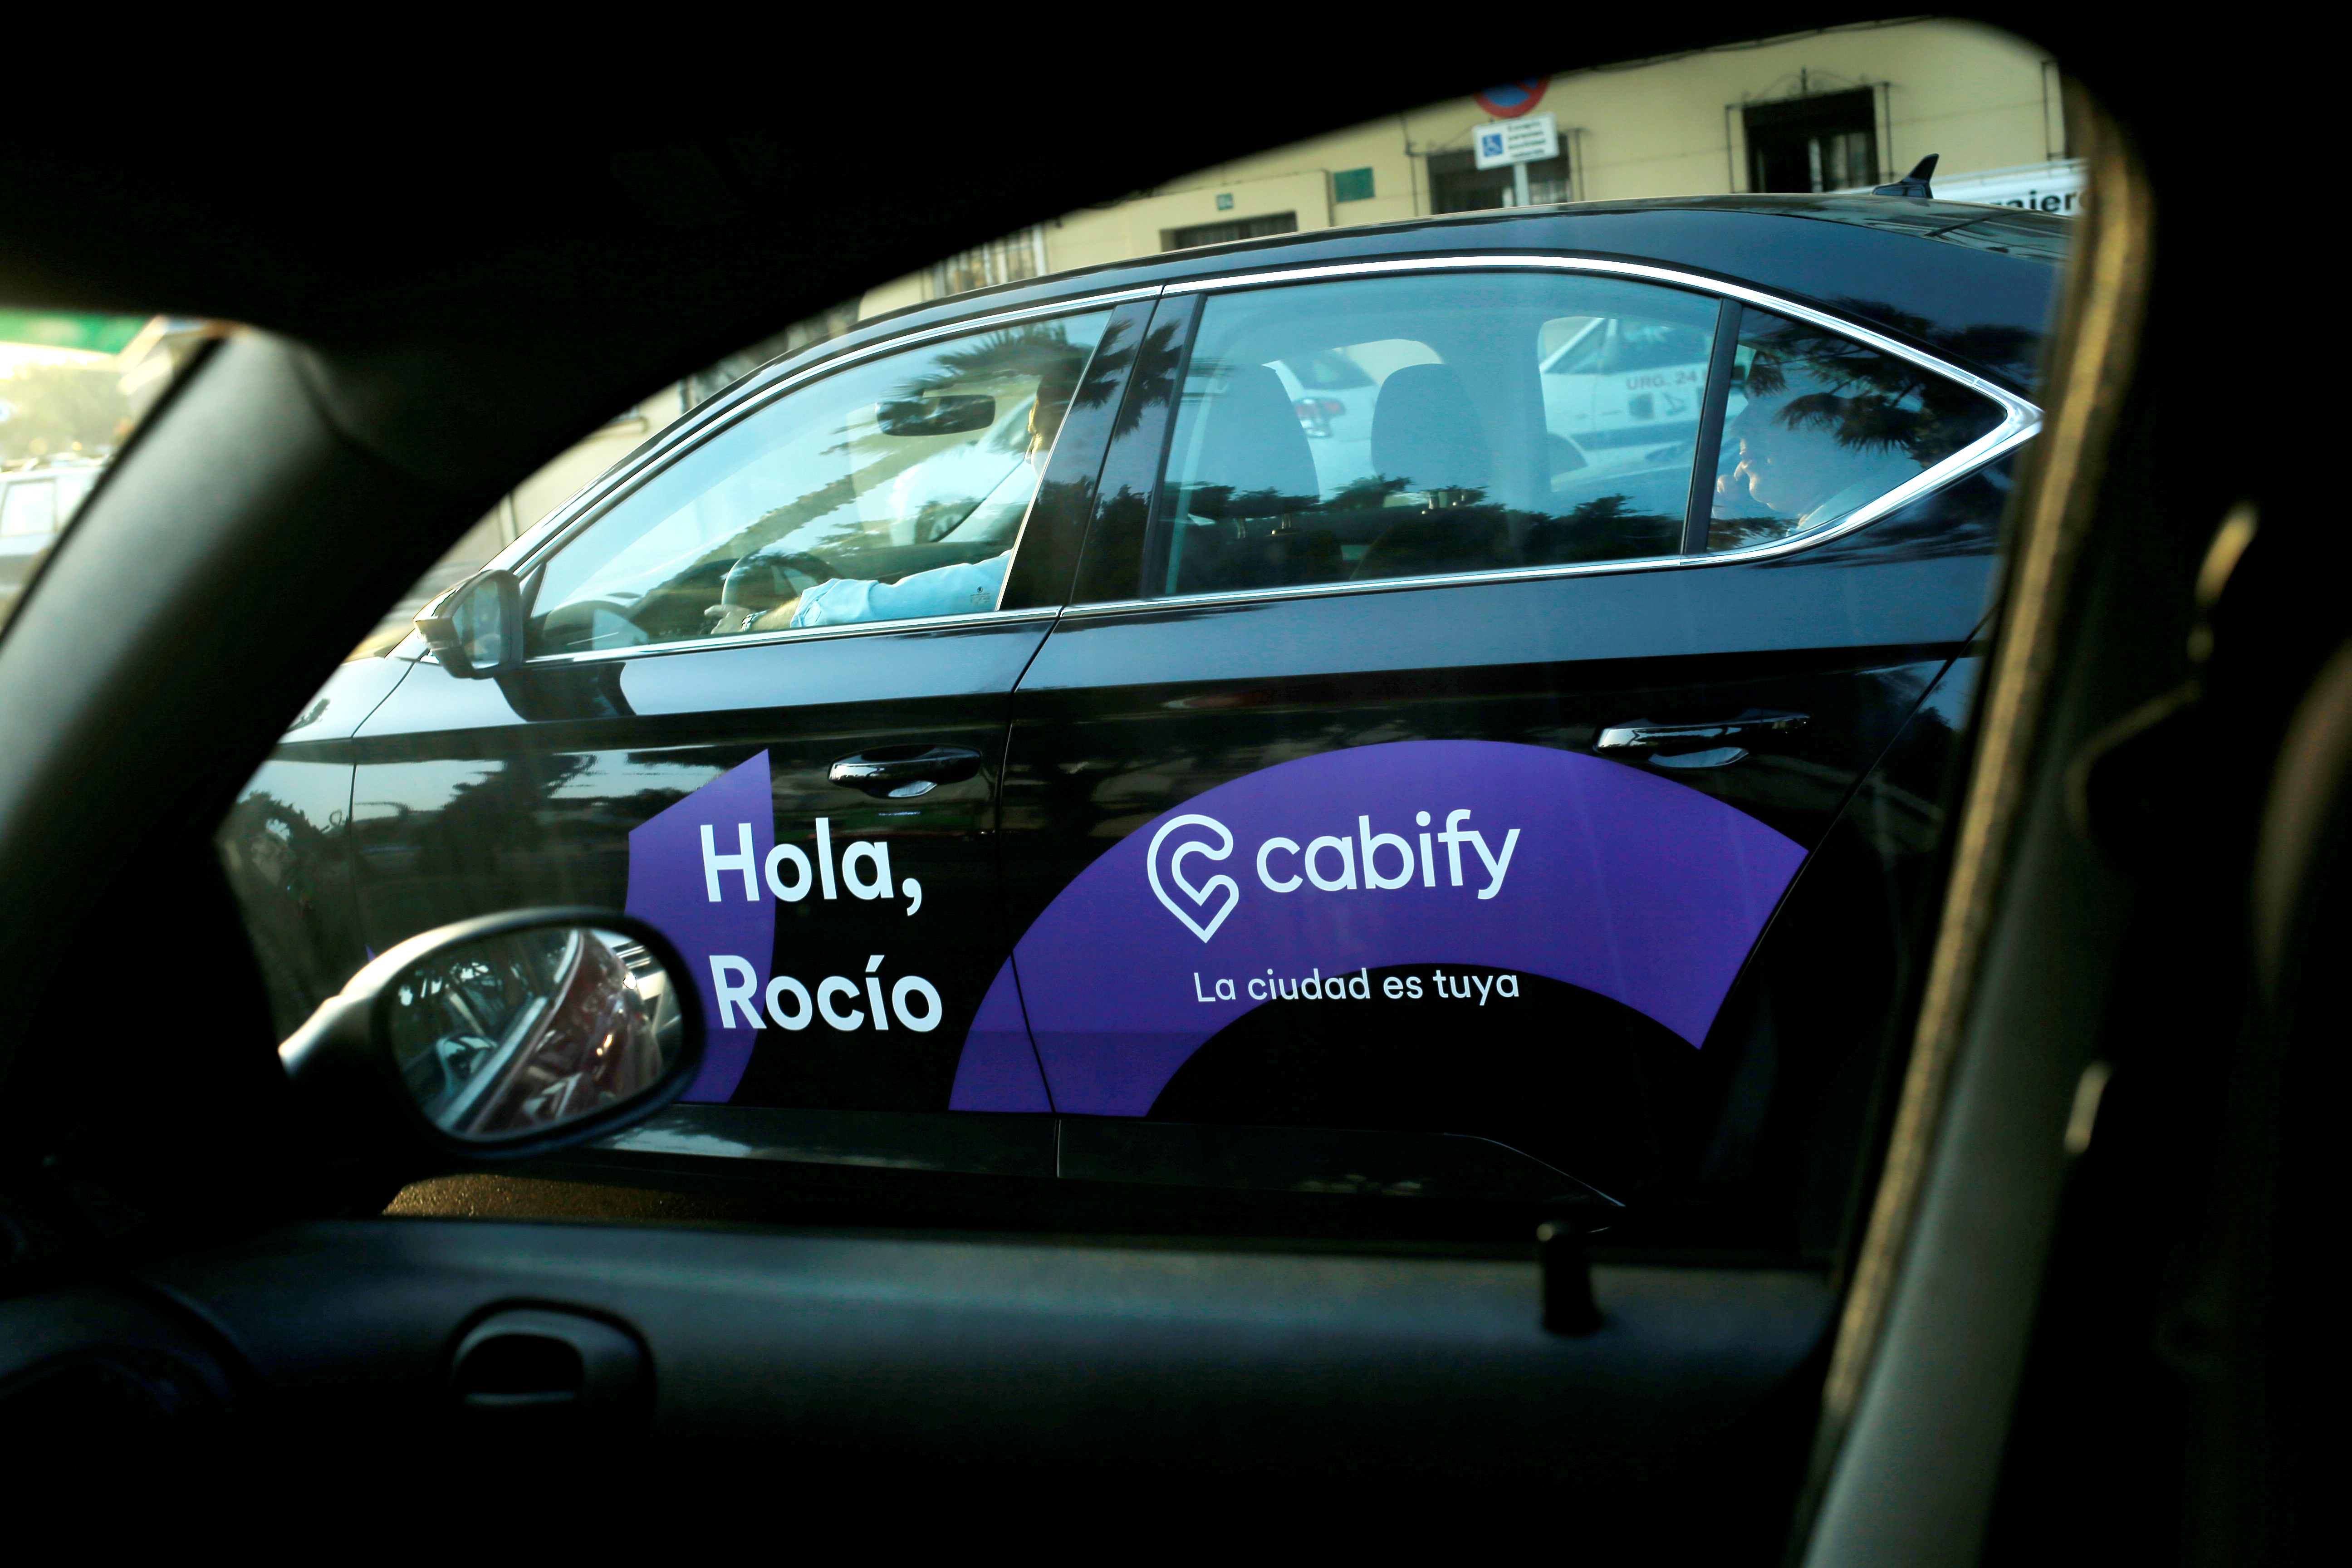 A Cabify taxi car is seen through the window of a car in Malaga, southern Spain August 3, 2018. REUTERS/Jon Nazca